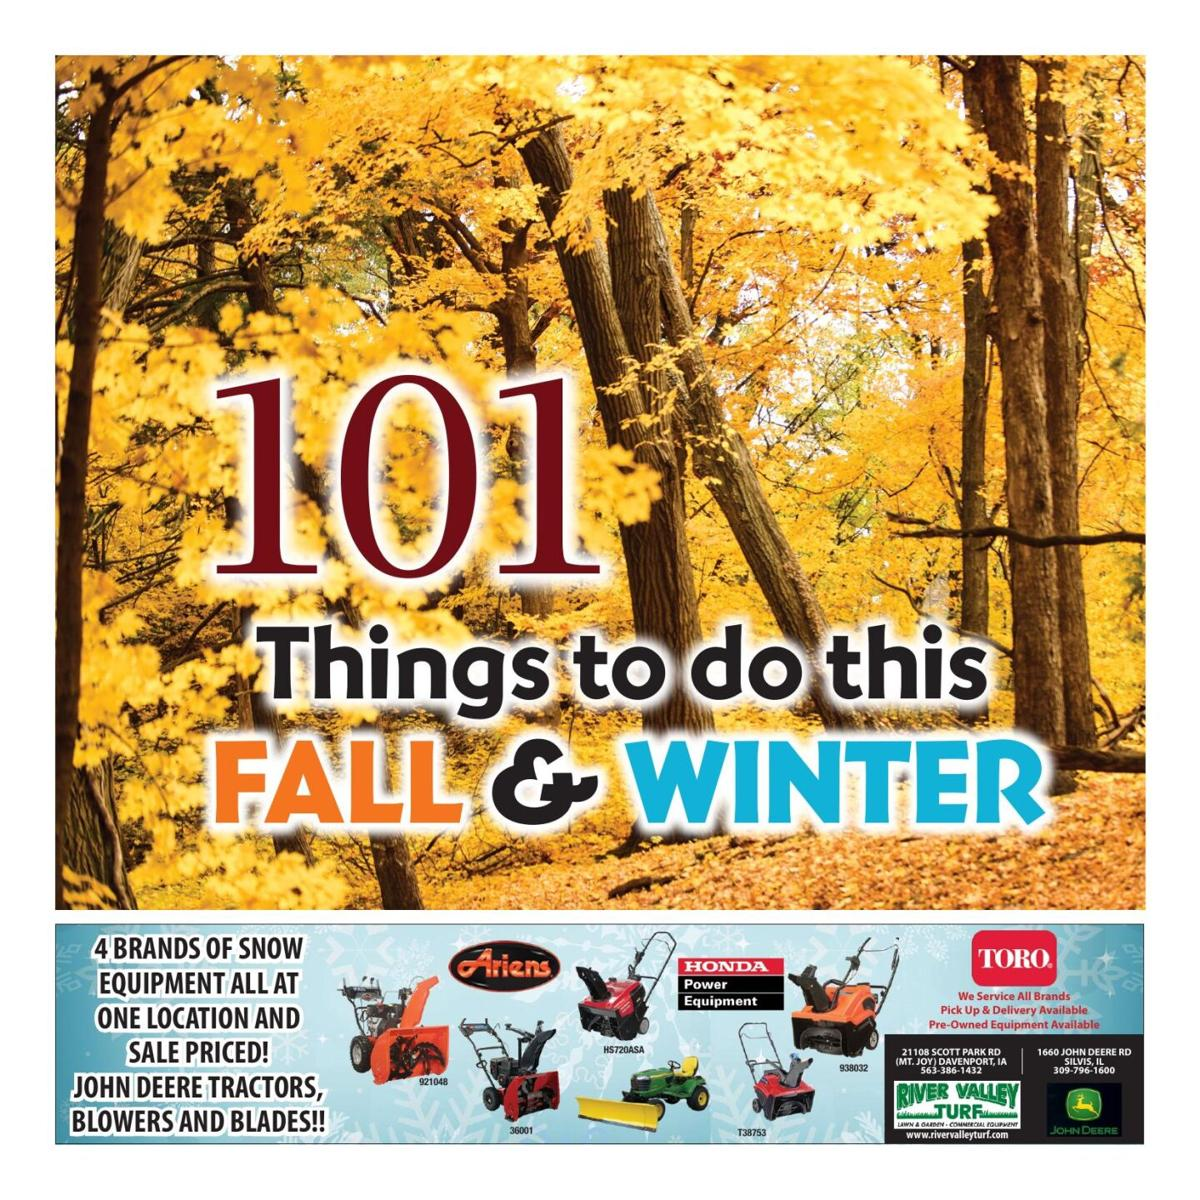 101 Things to Do this Fall & Winter